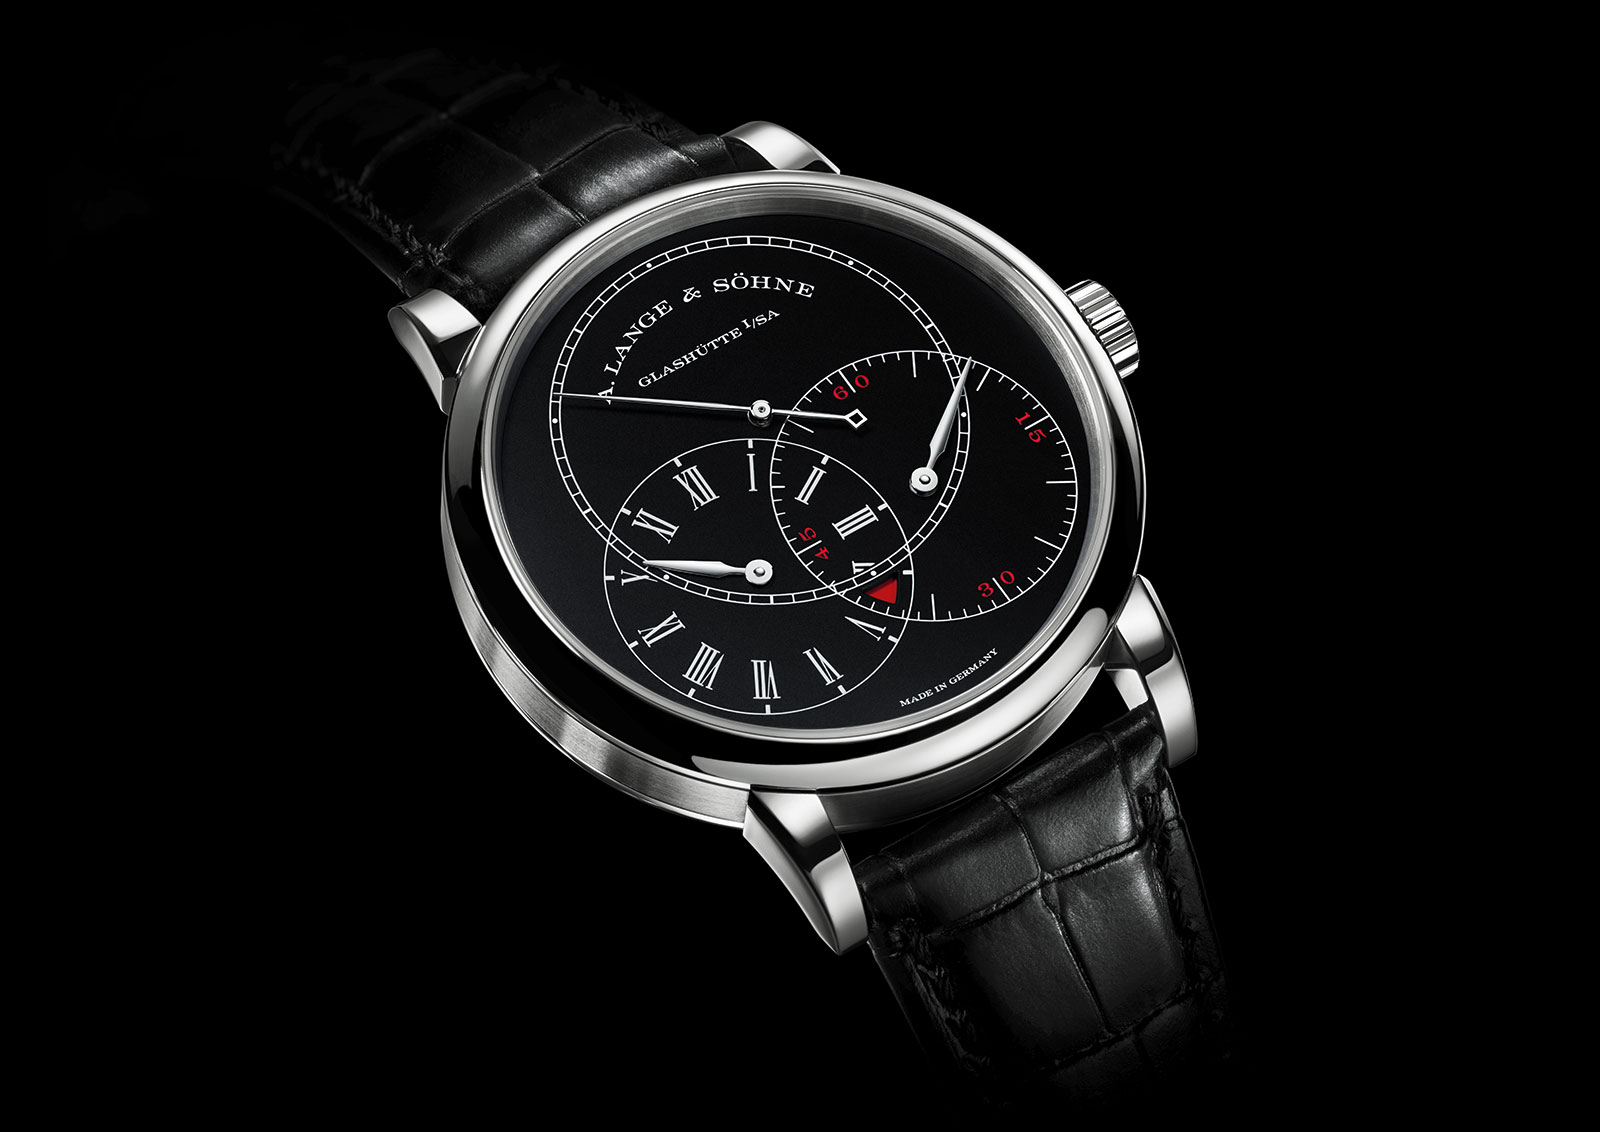 Richard-Lange-Jumping-Seconds-Black-Dial-1-1